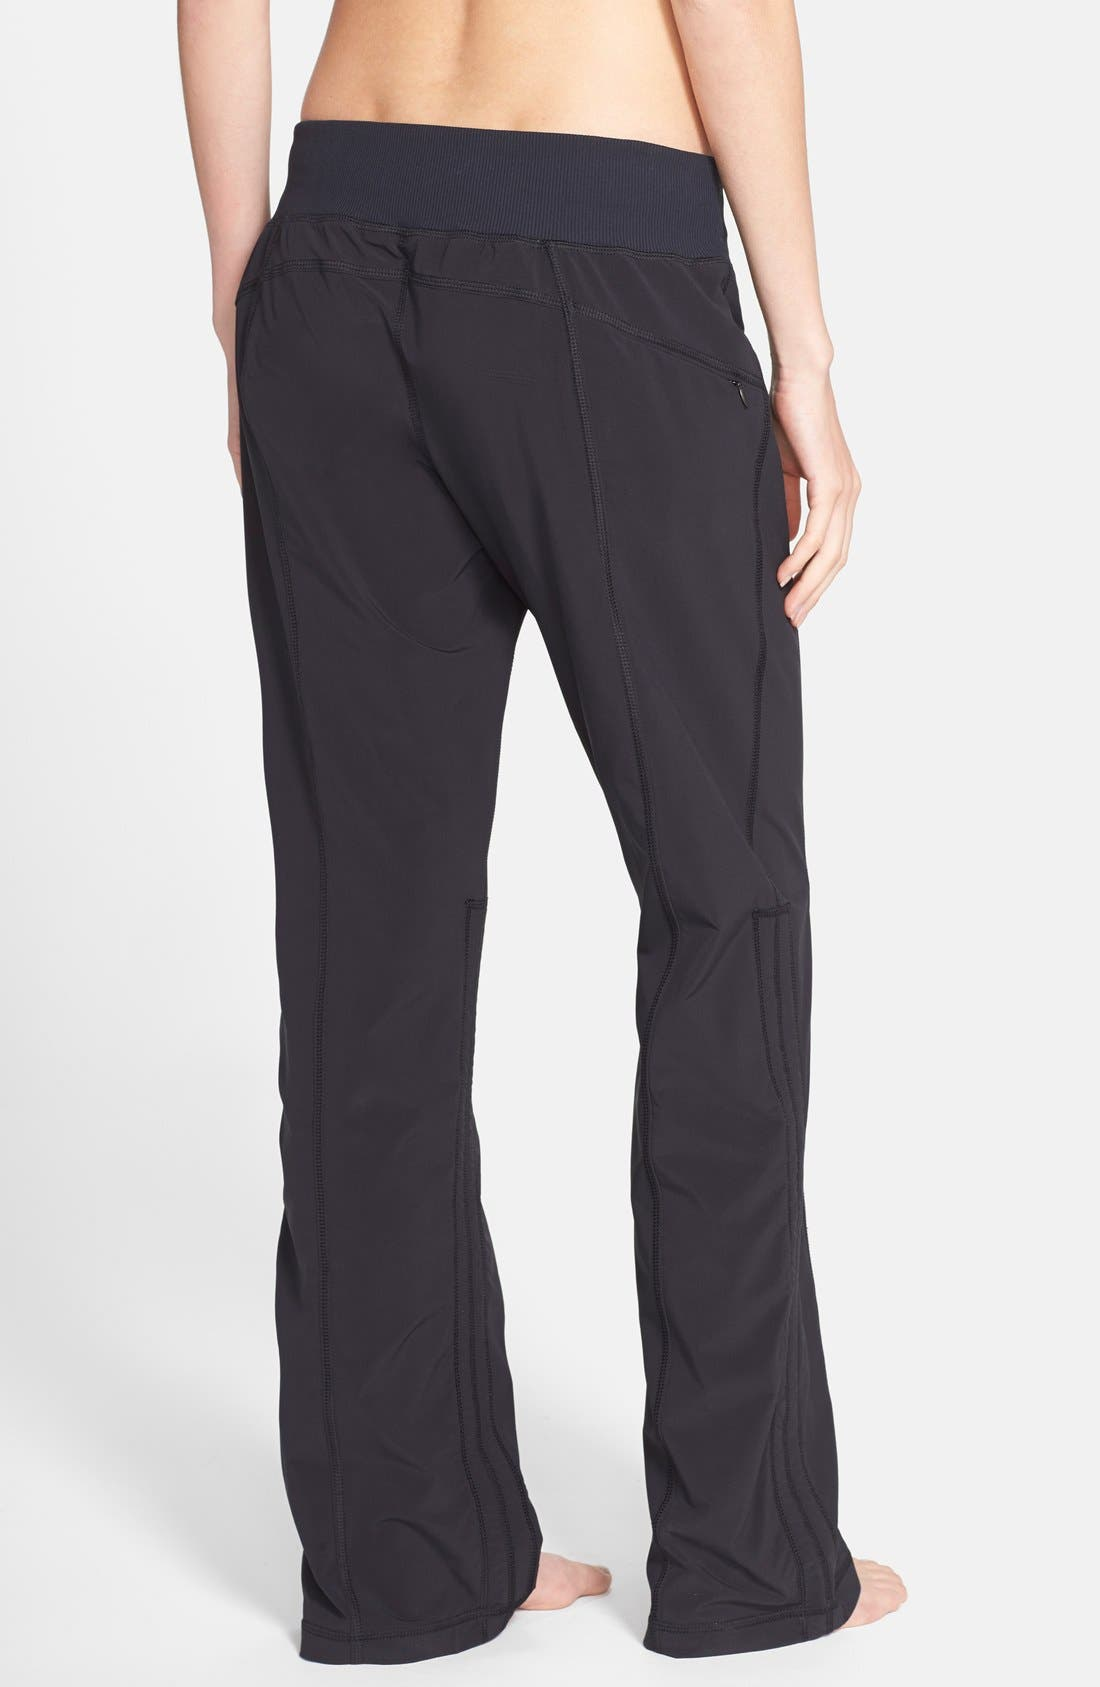 'Work It' Pants,                             Alternate thumbnail 2, color,                             Black